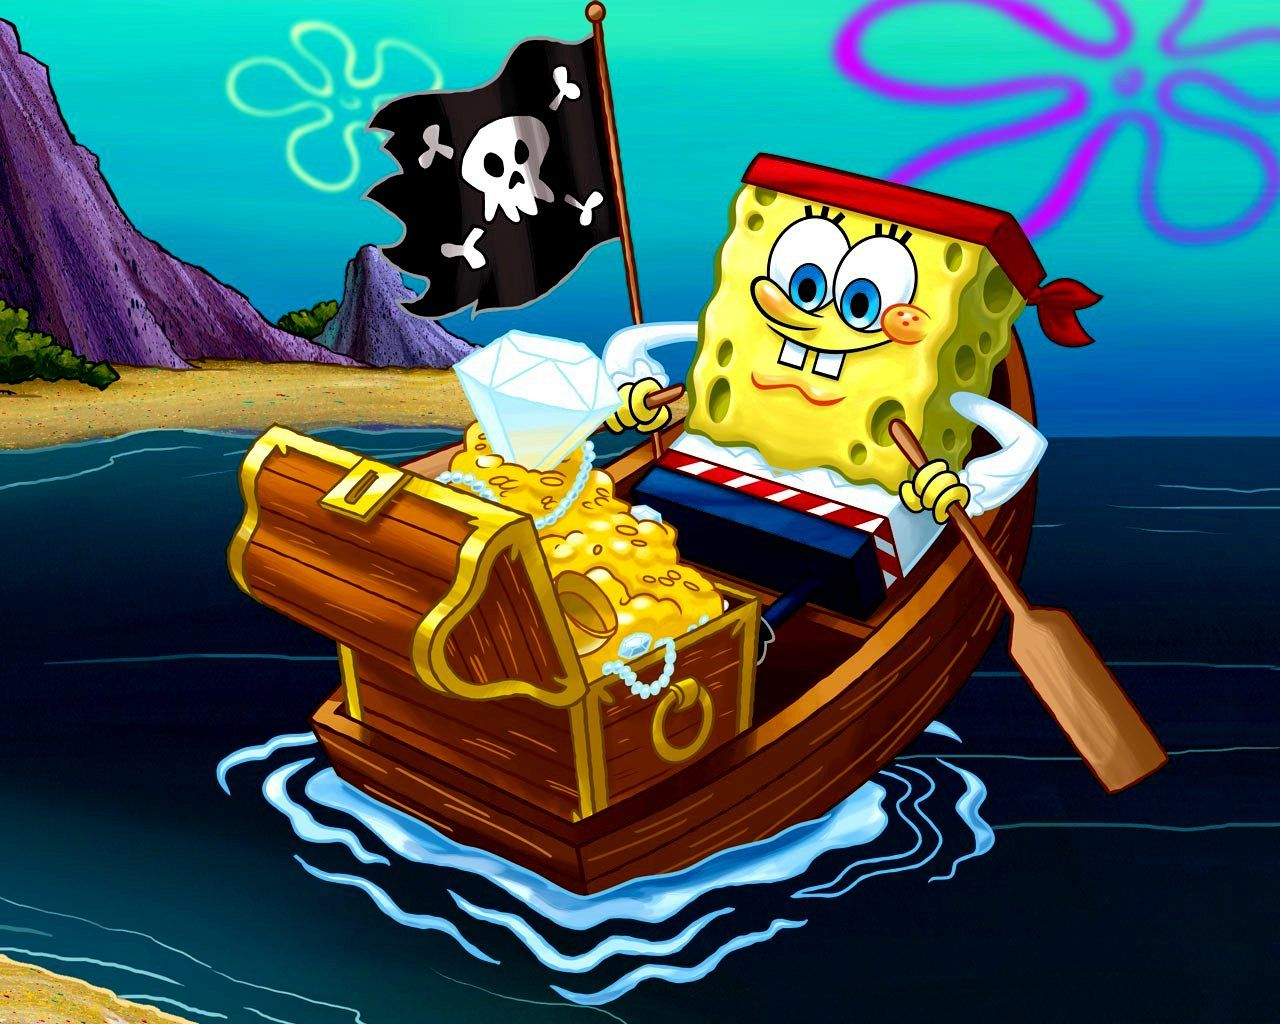 Pirate For Kids Wallpaper Mobile On Wallpaper 1080p Hd Wallpapers